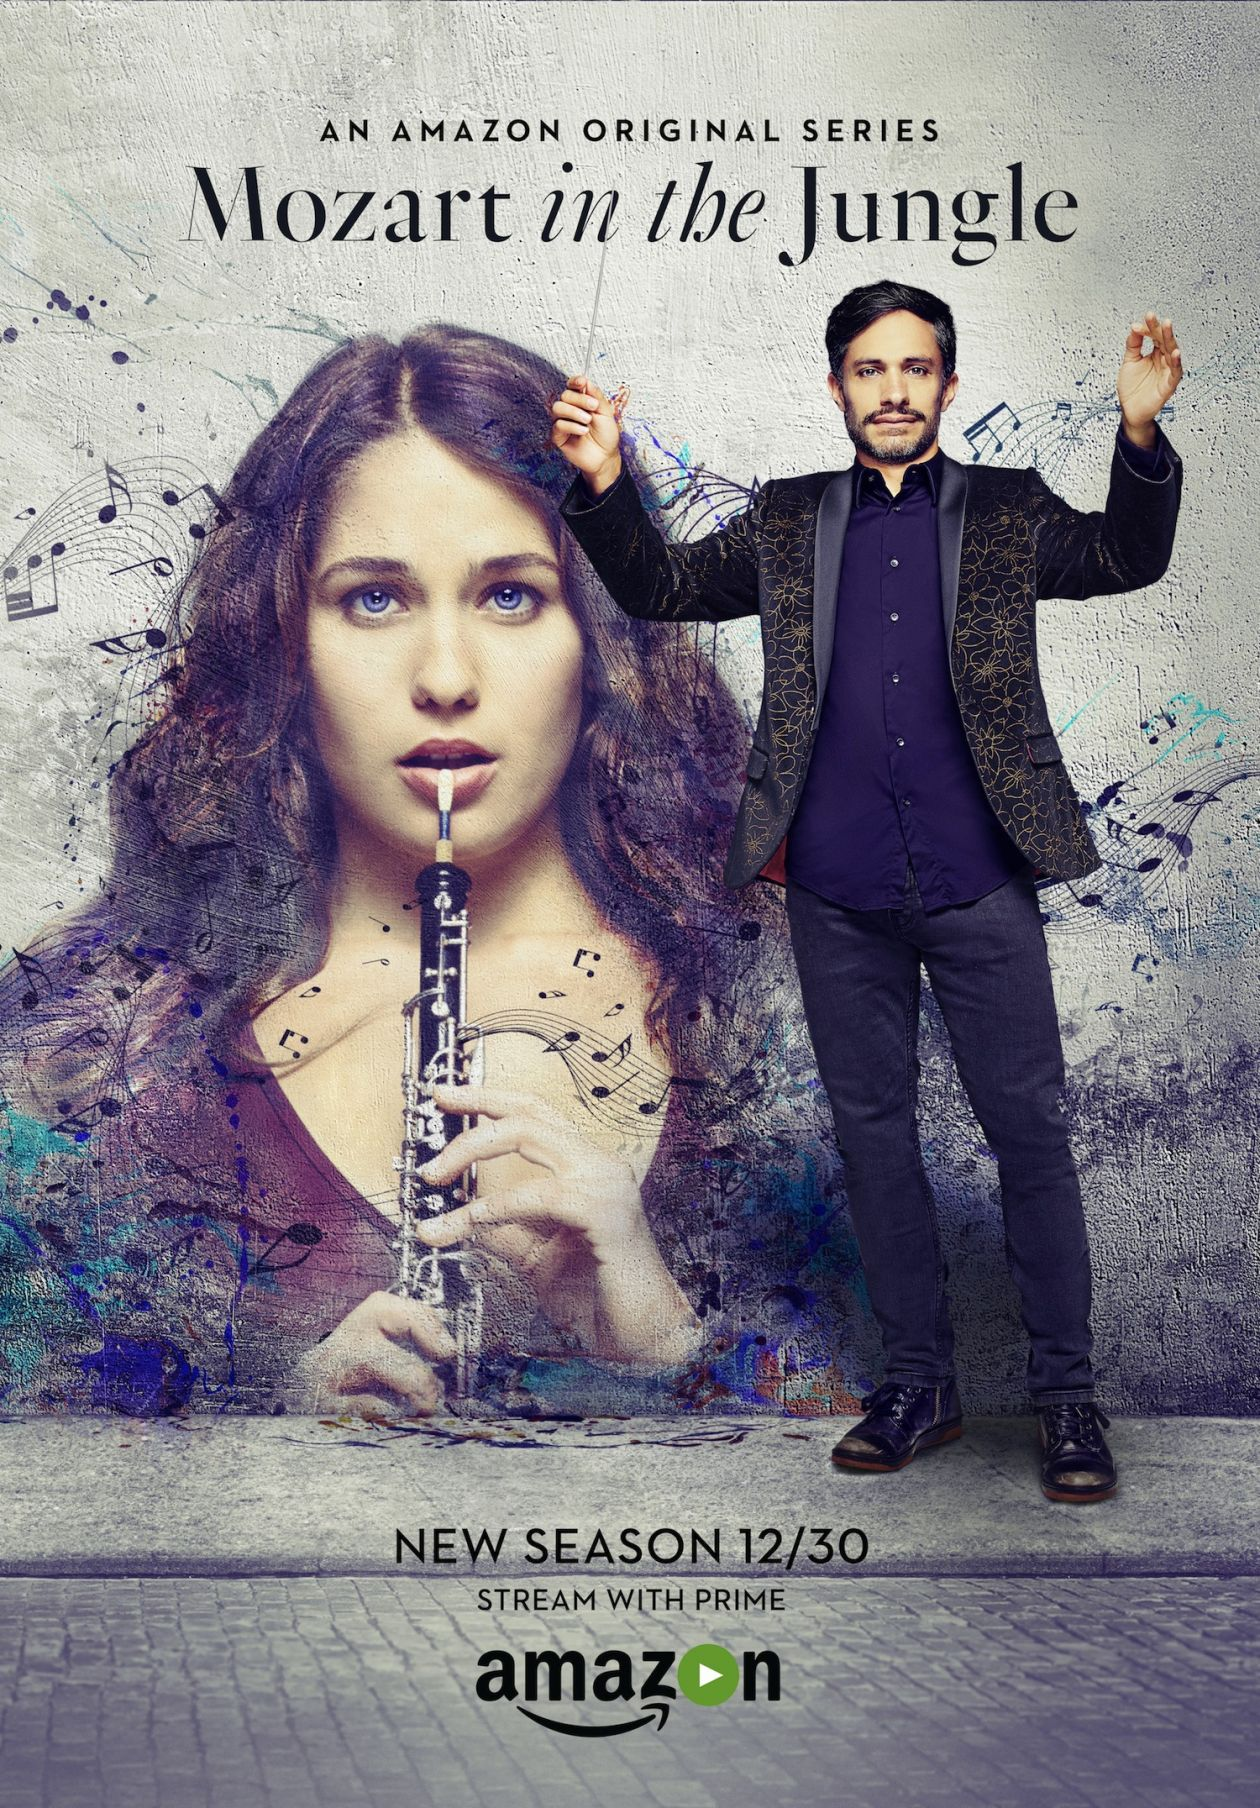 Lola Kirke actress | Mozart in the Jungle / Amazon Series Poster Season 2